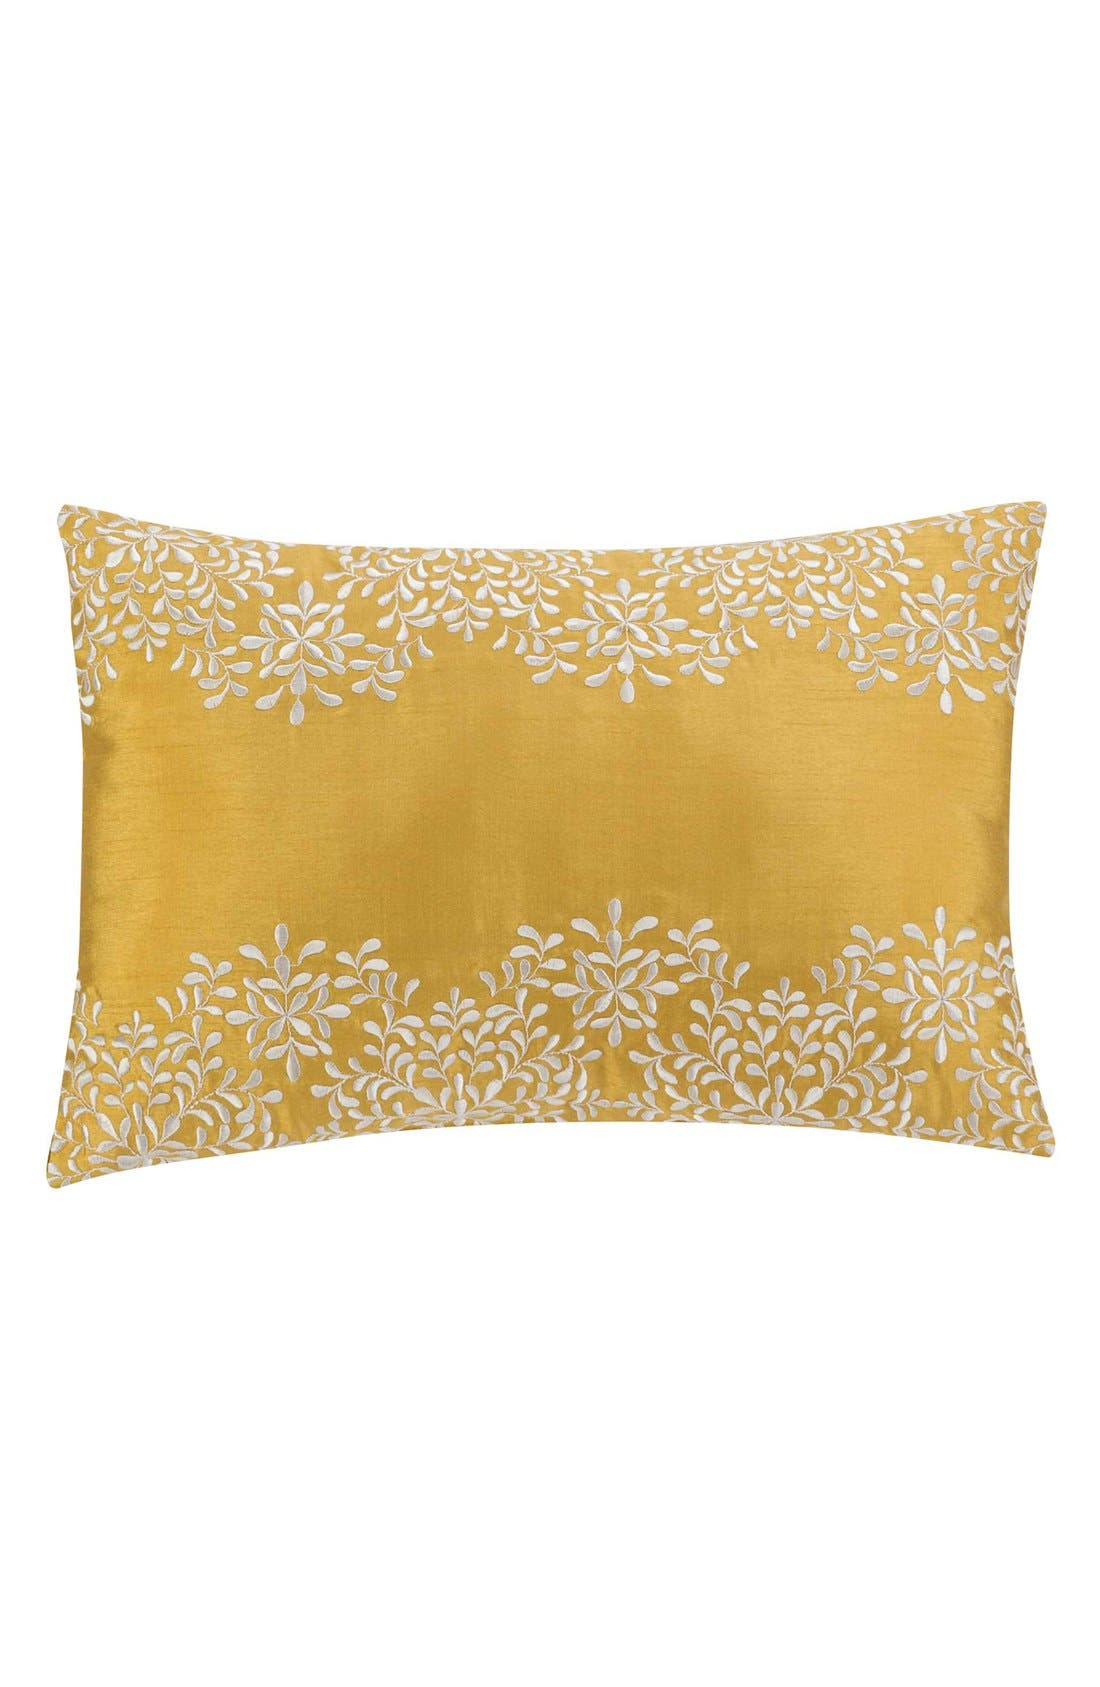 Main Image - KAS Designs 'Octavia' Embroidered Accent Pillow